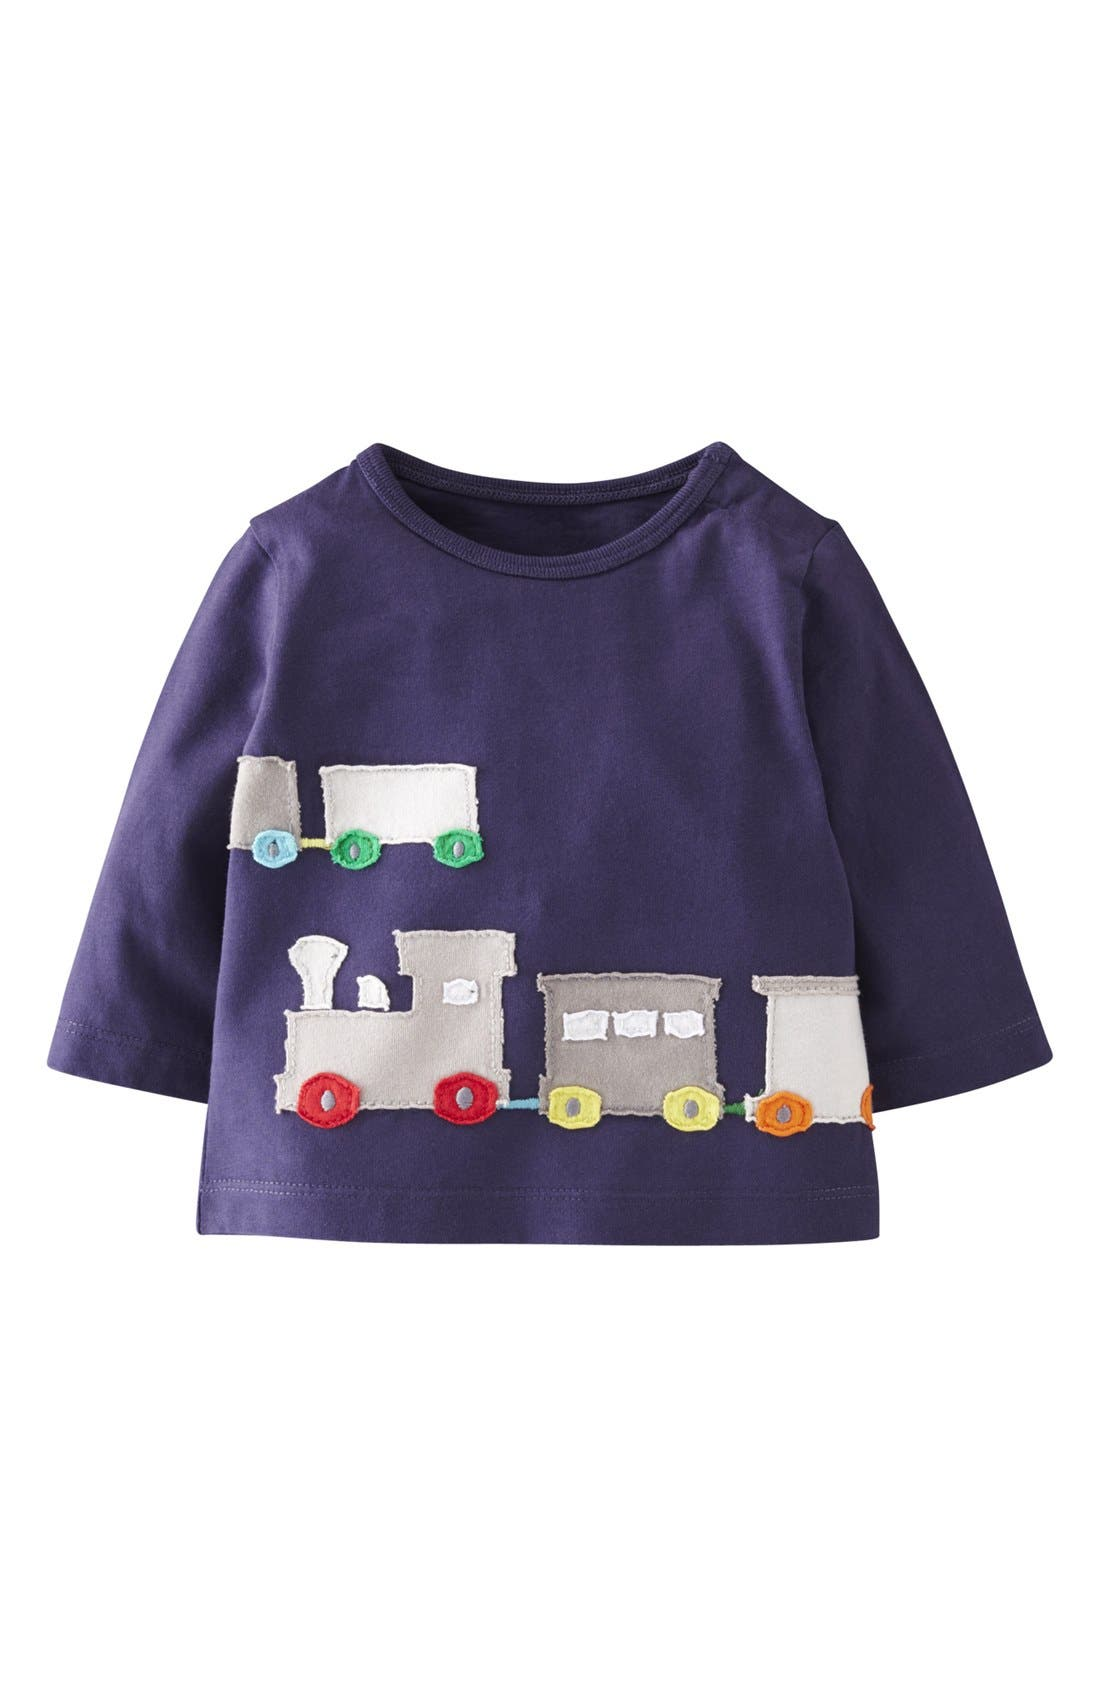 Main Image - Mini Boden 'Big Appliqué' T-Shirt (Baby Boys)